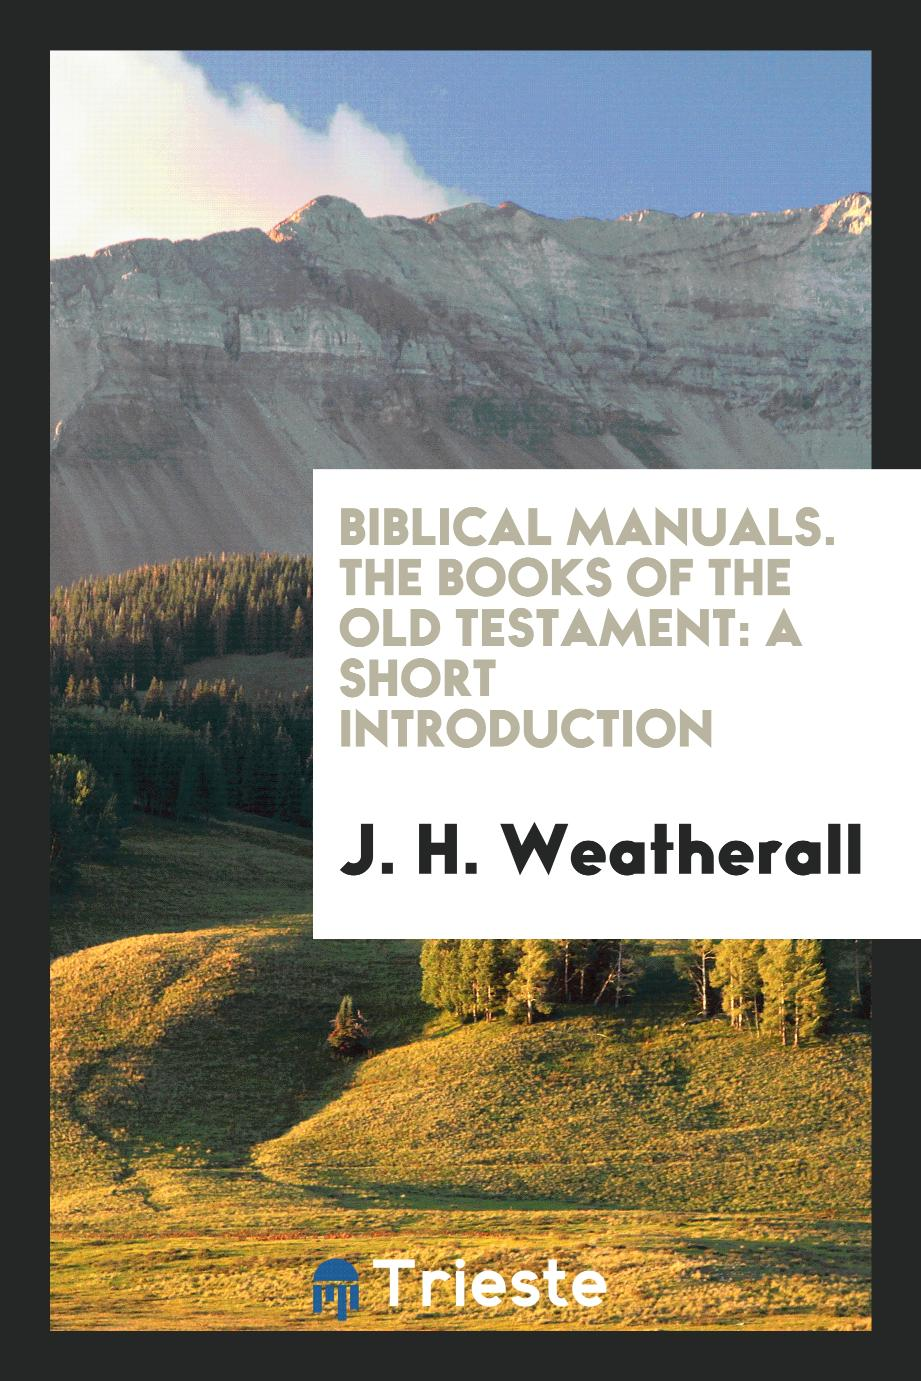 Biblical Manuals. The Books of the Old Testament: A Short Introduction